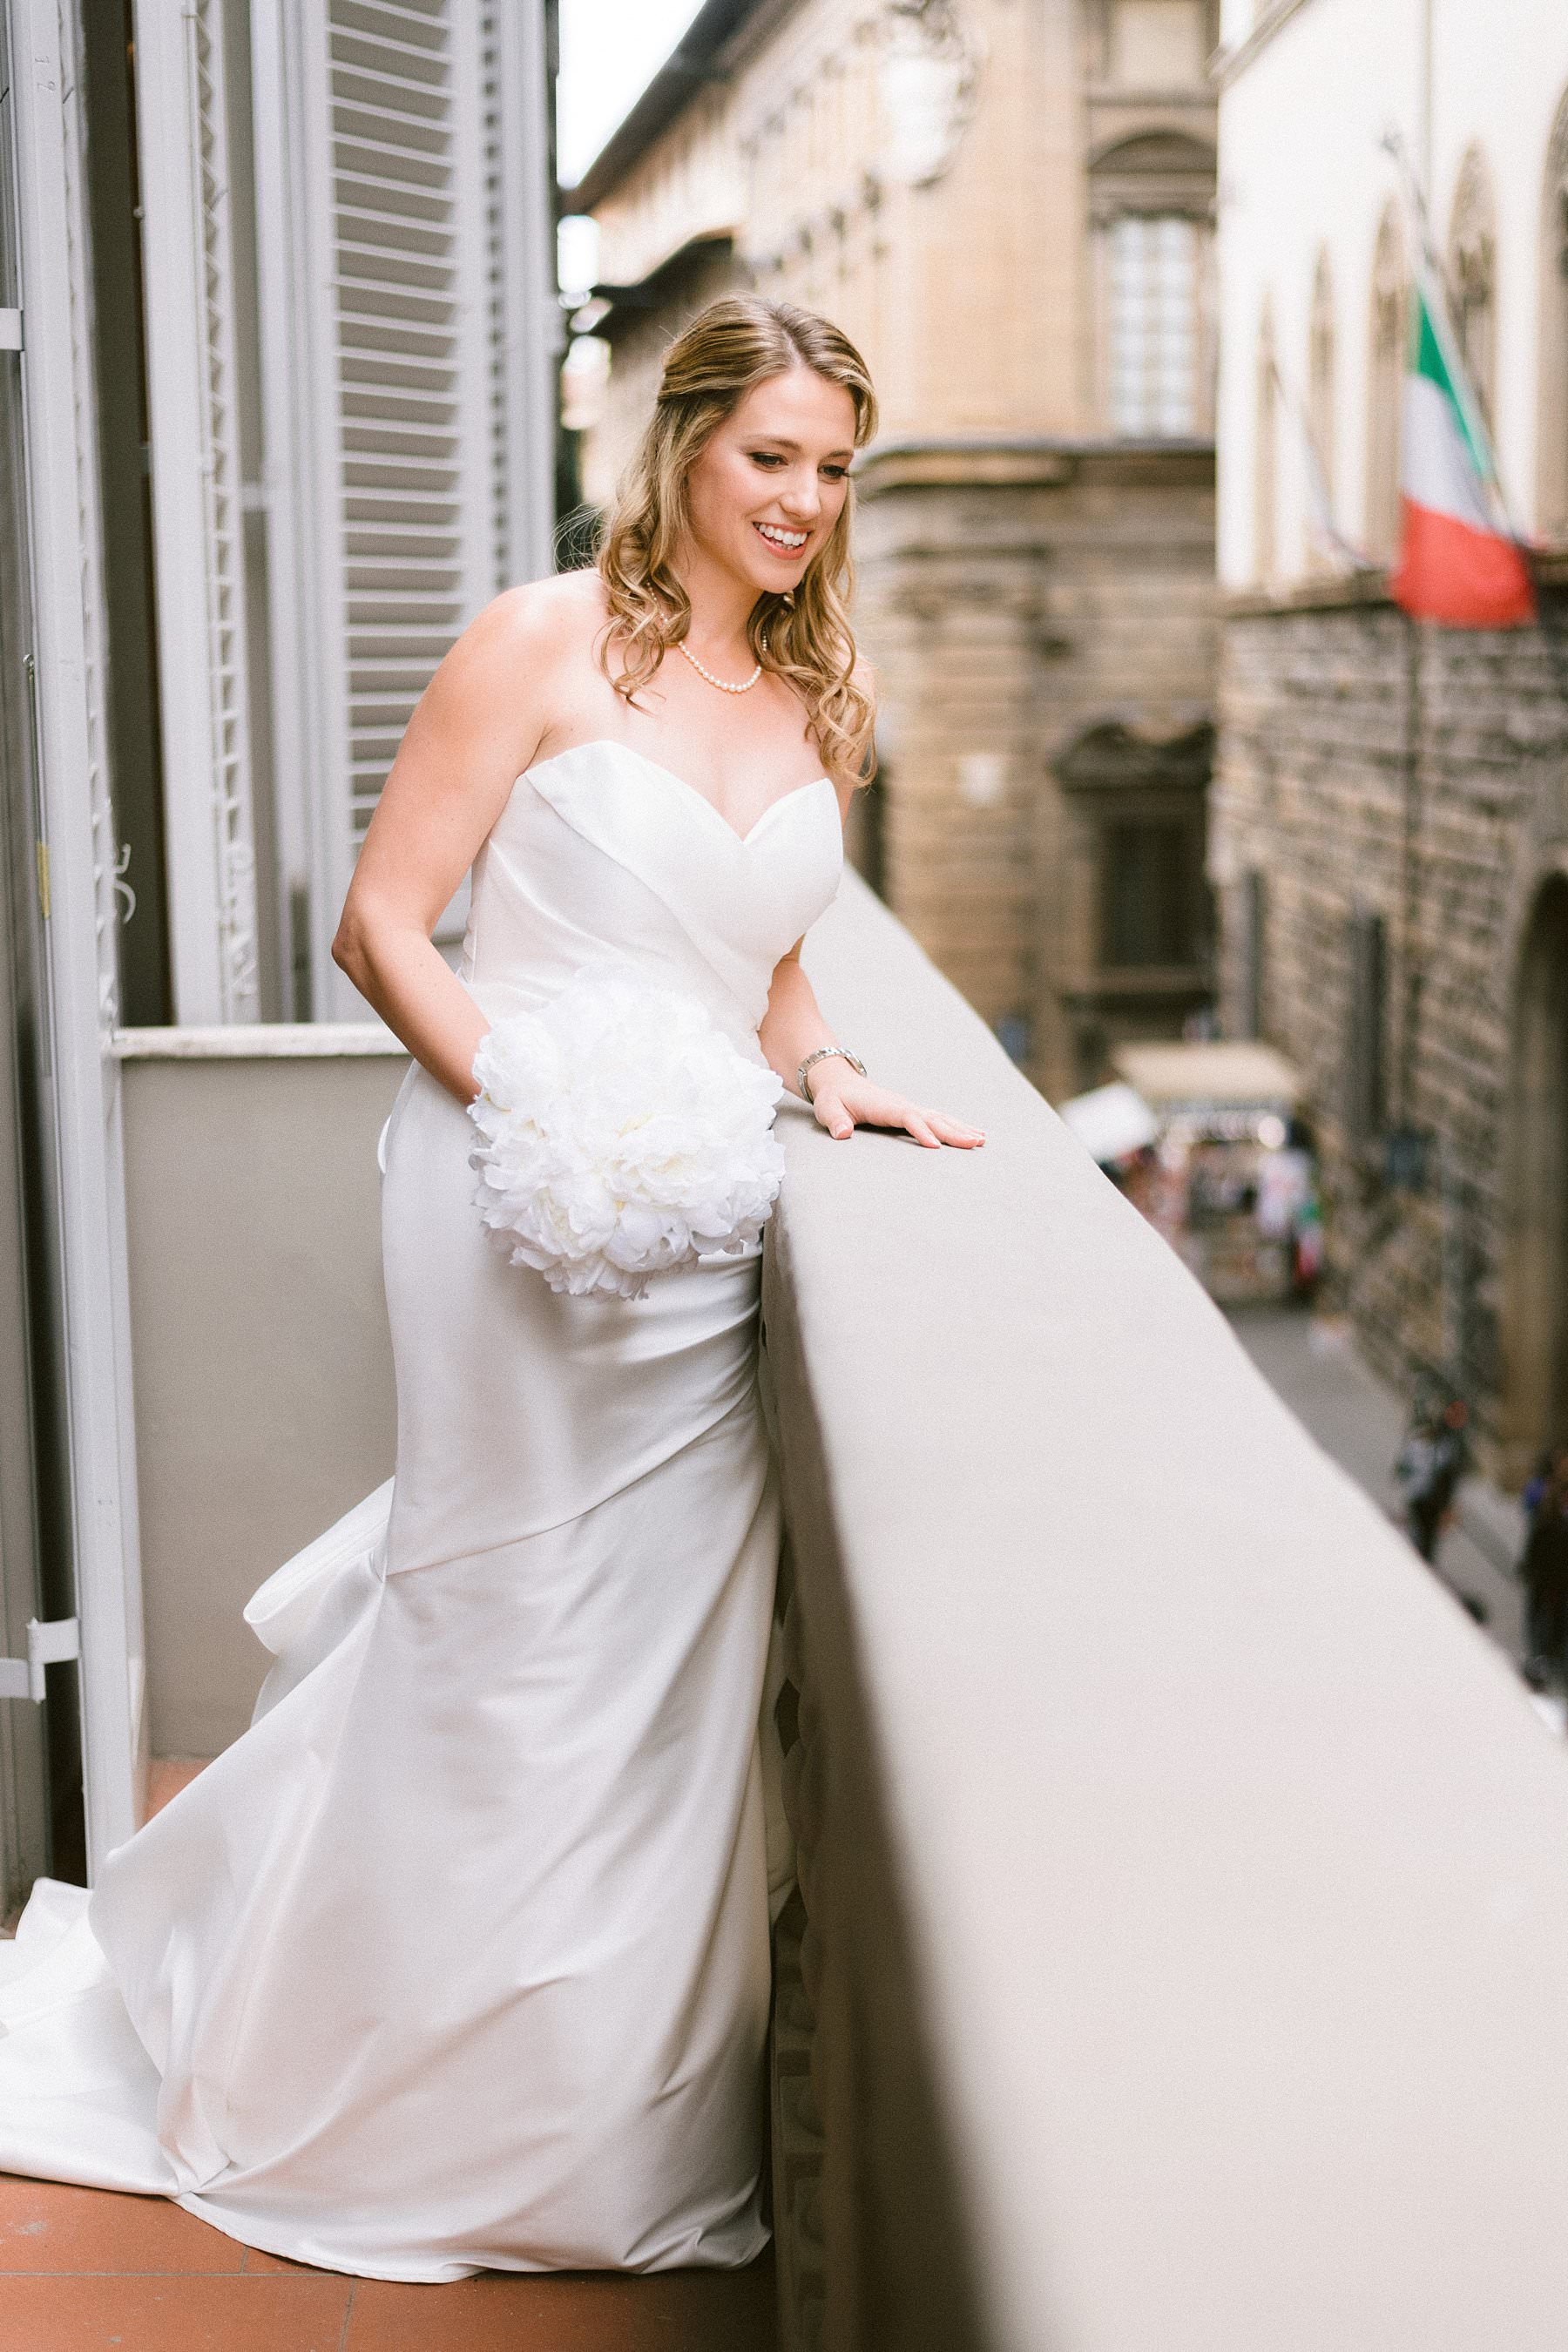 Intimate exquisite wedding in the heart of Florence, Italy. Lovely, smiling and elegant bride Beth is almost ready to leave Grand Hotel Cavour suite for the destination wedding ceremony